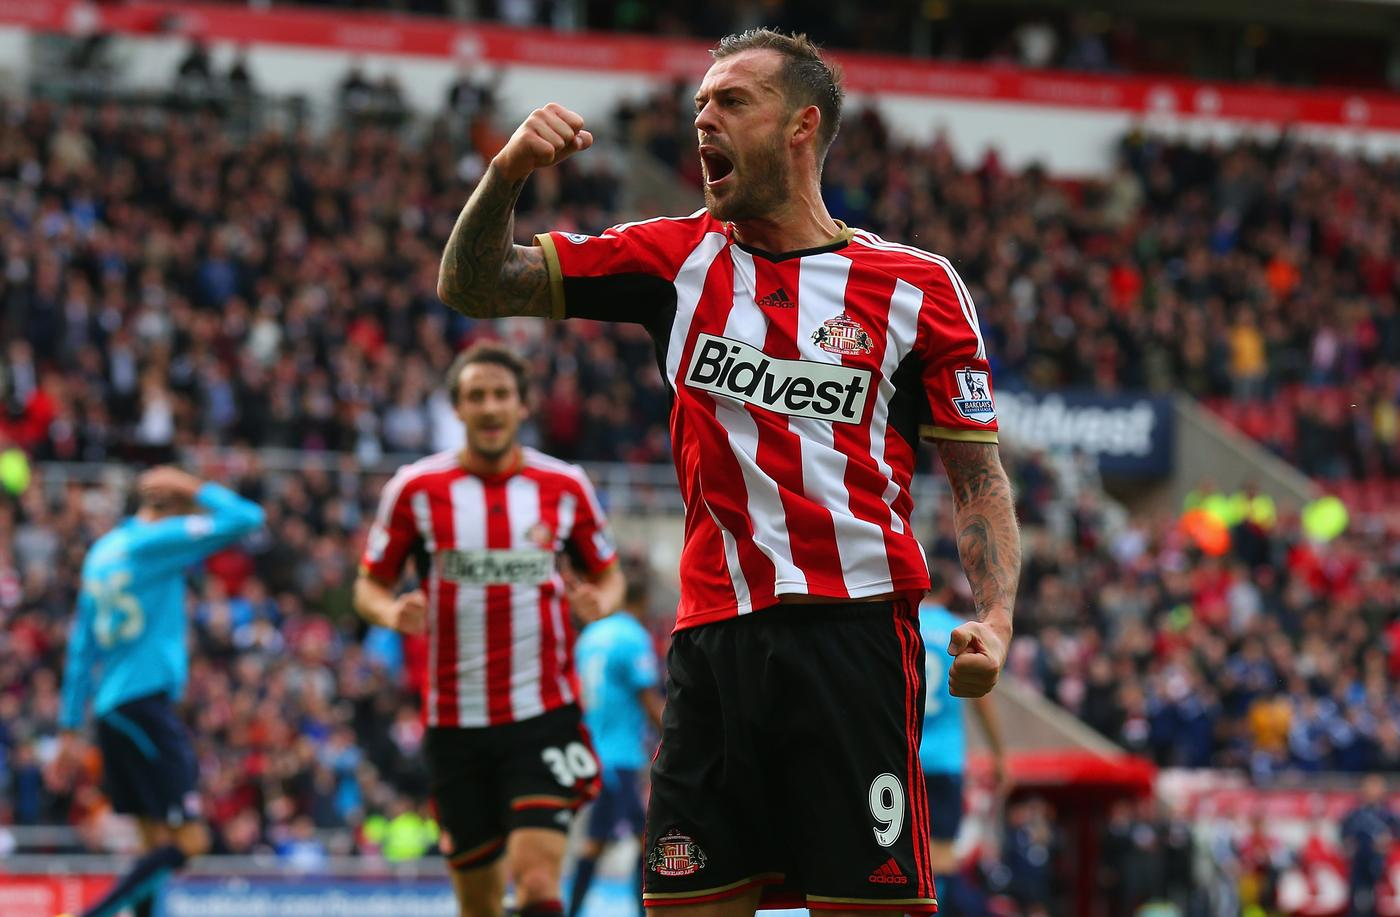 Patience rewarded as Sunderland earn first win of the campaign against Stoke City